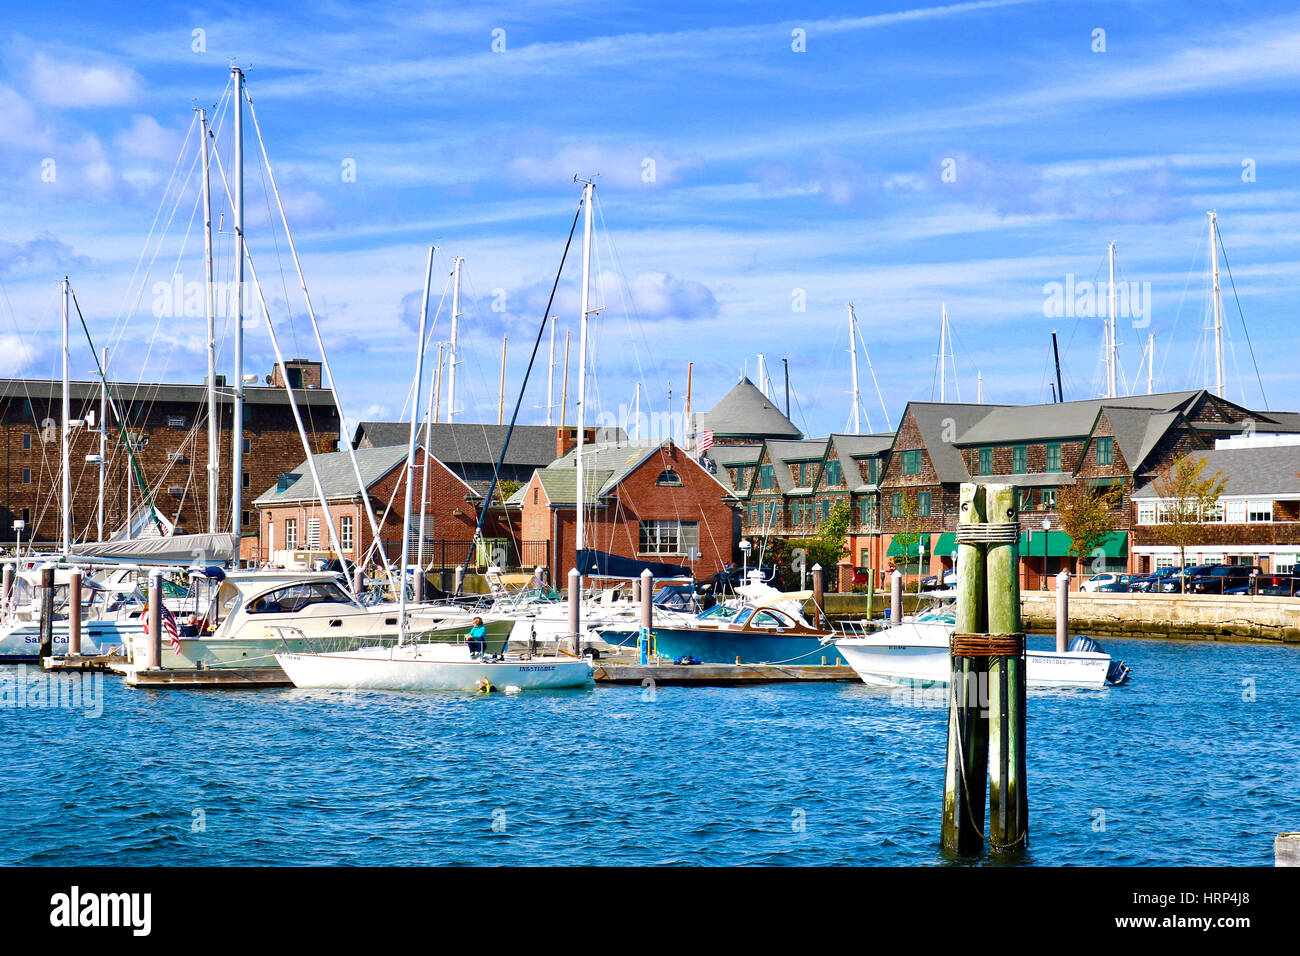 Sailboats of Newport - Stock Image